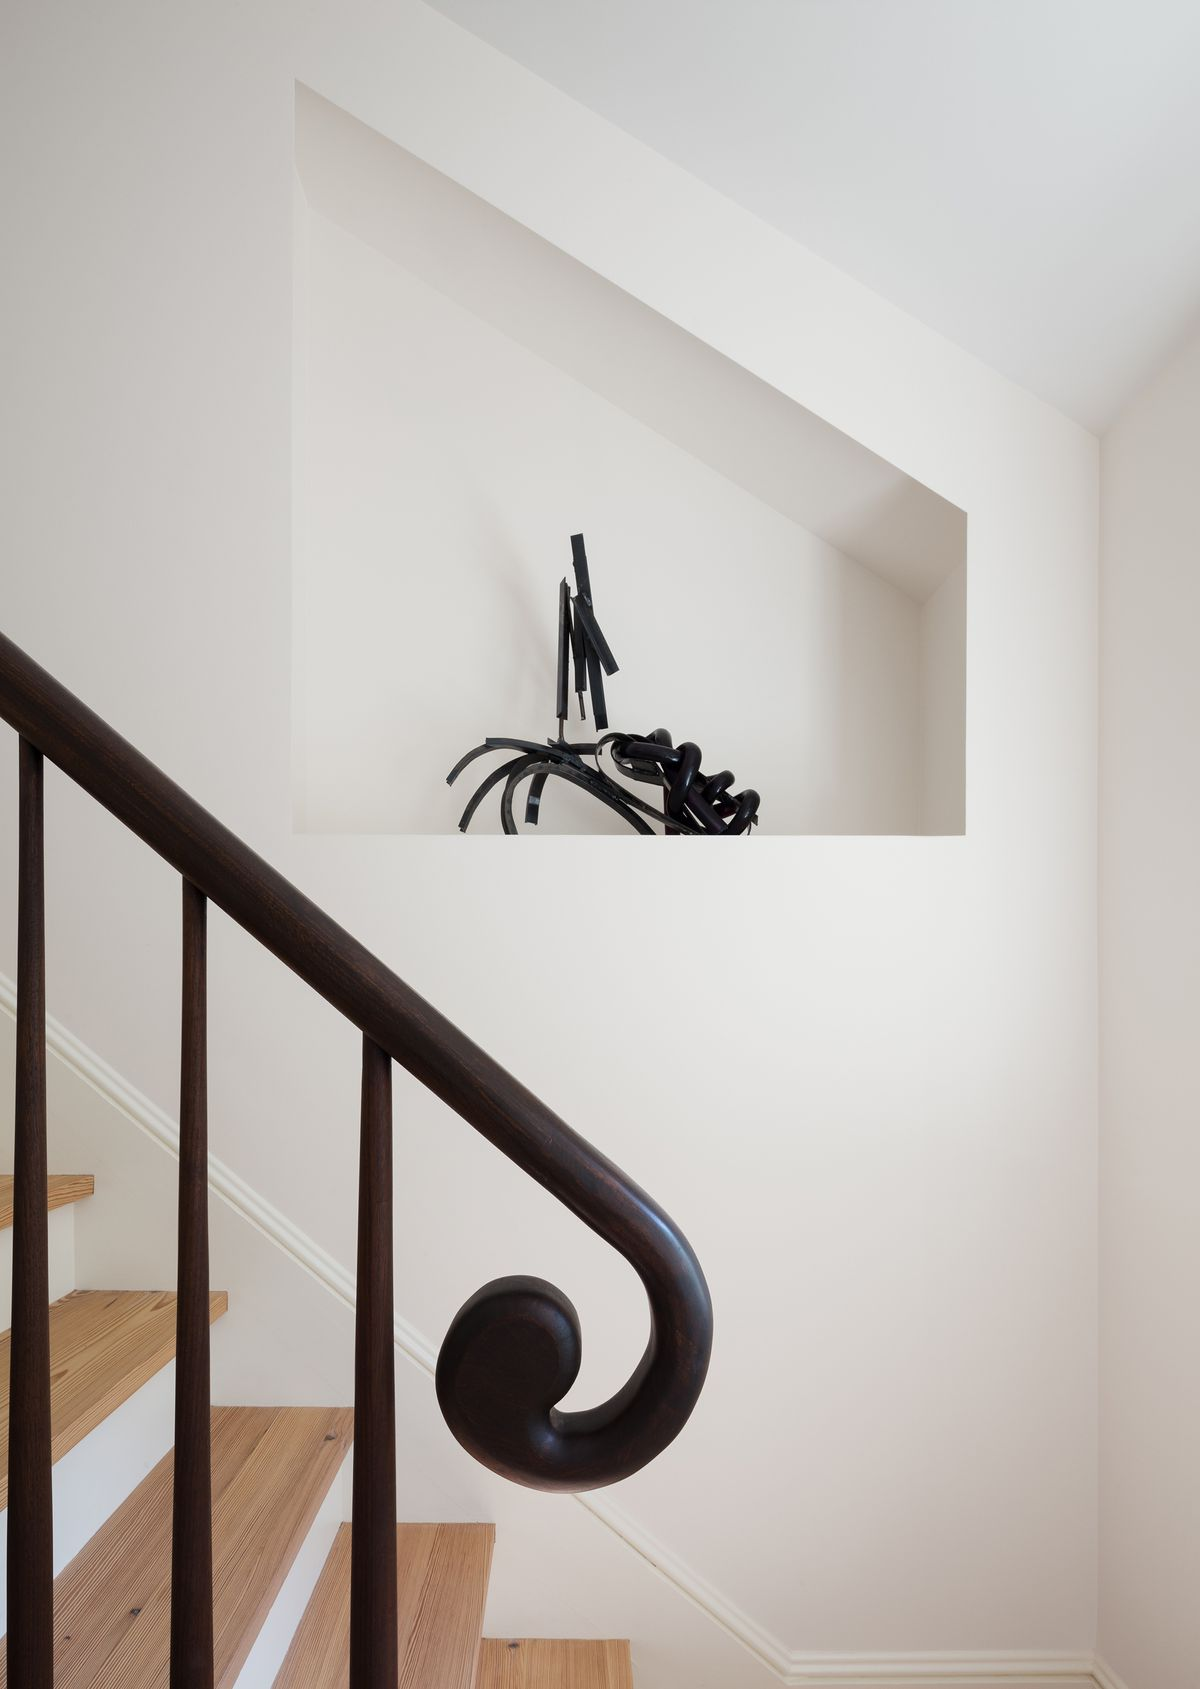 A black stair rail. The bottom of the stair rail is a curl shape. The stairs are hardwood and the walls are painted white.